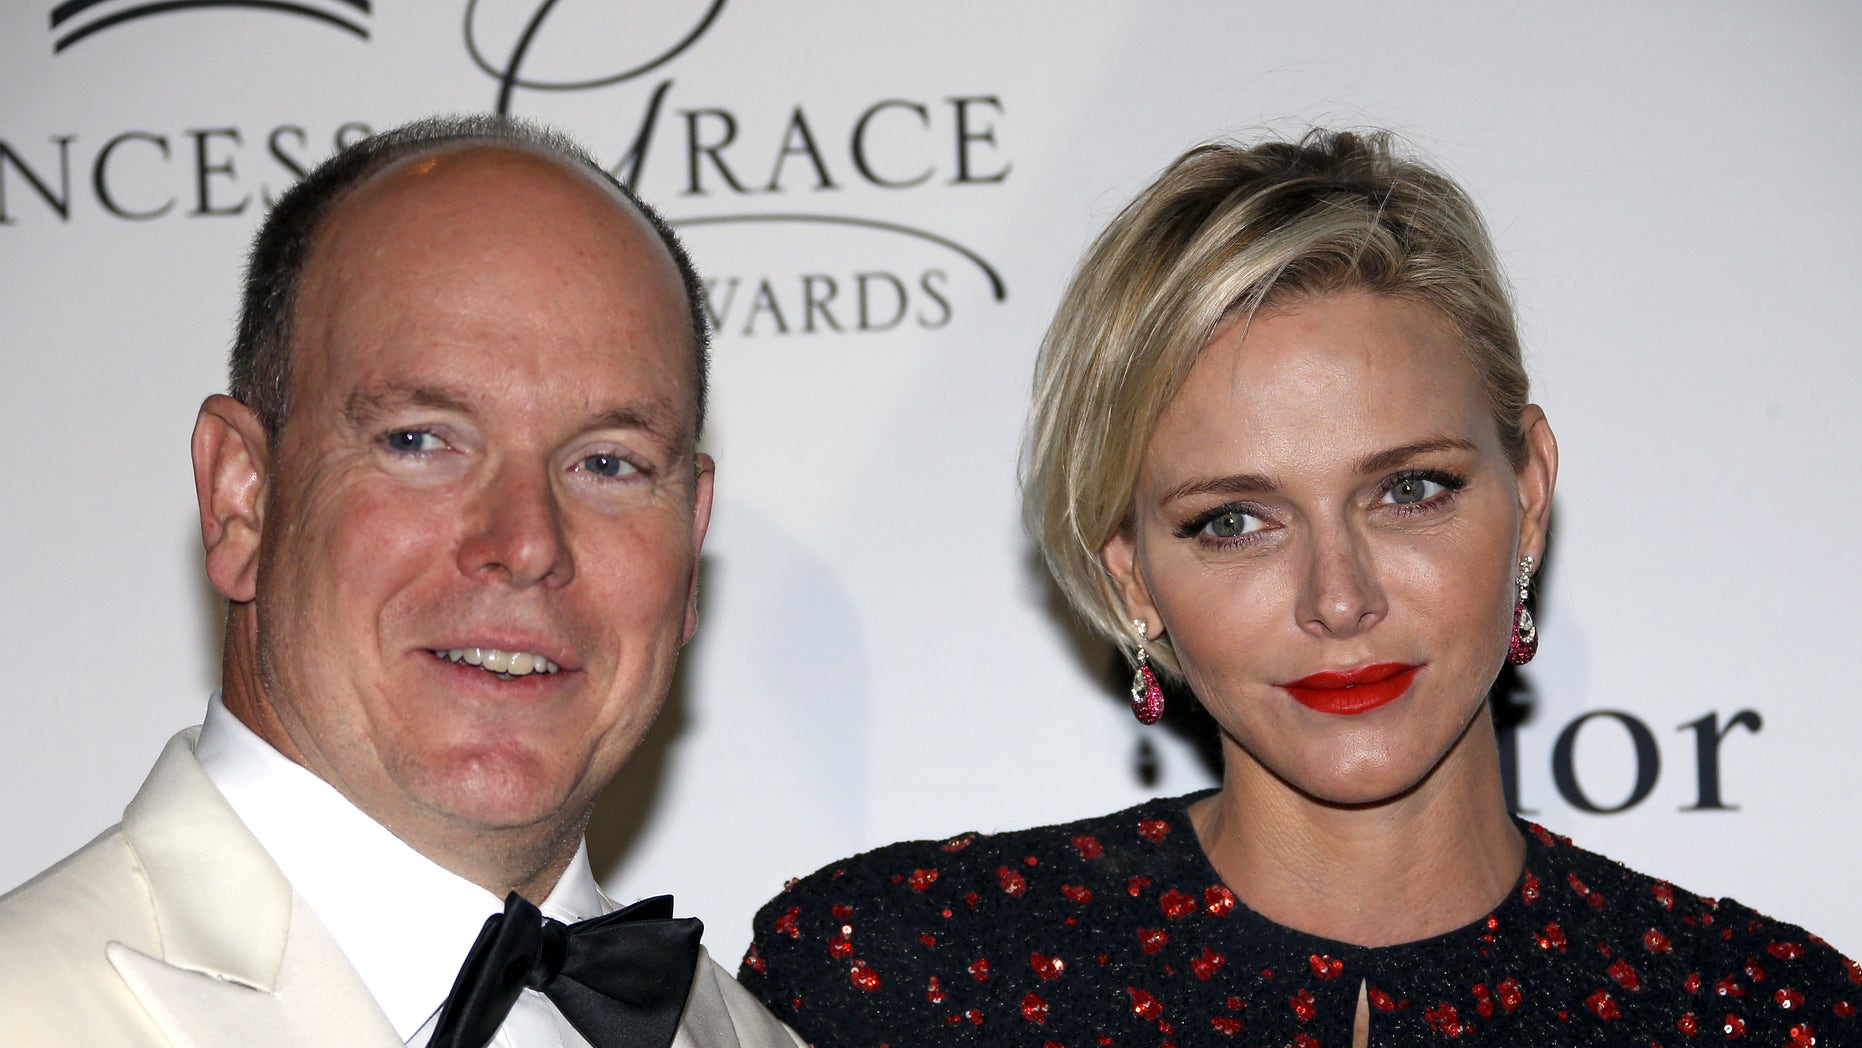 September 5, 2015. Prince Albert II of Monaco and his wife Princess Charlene pose at the Princess Grace Awards gala in Monaco.